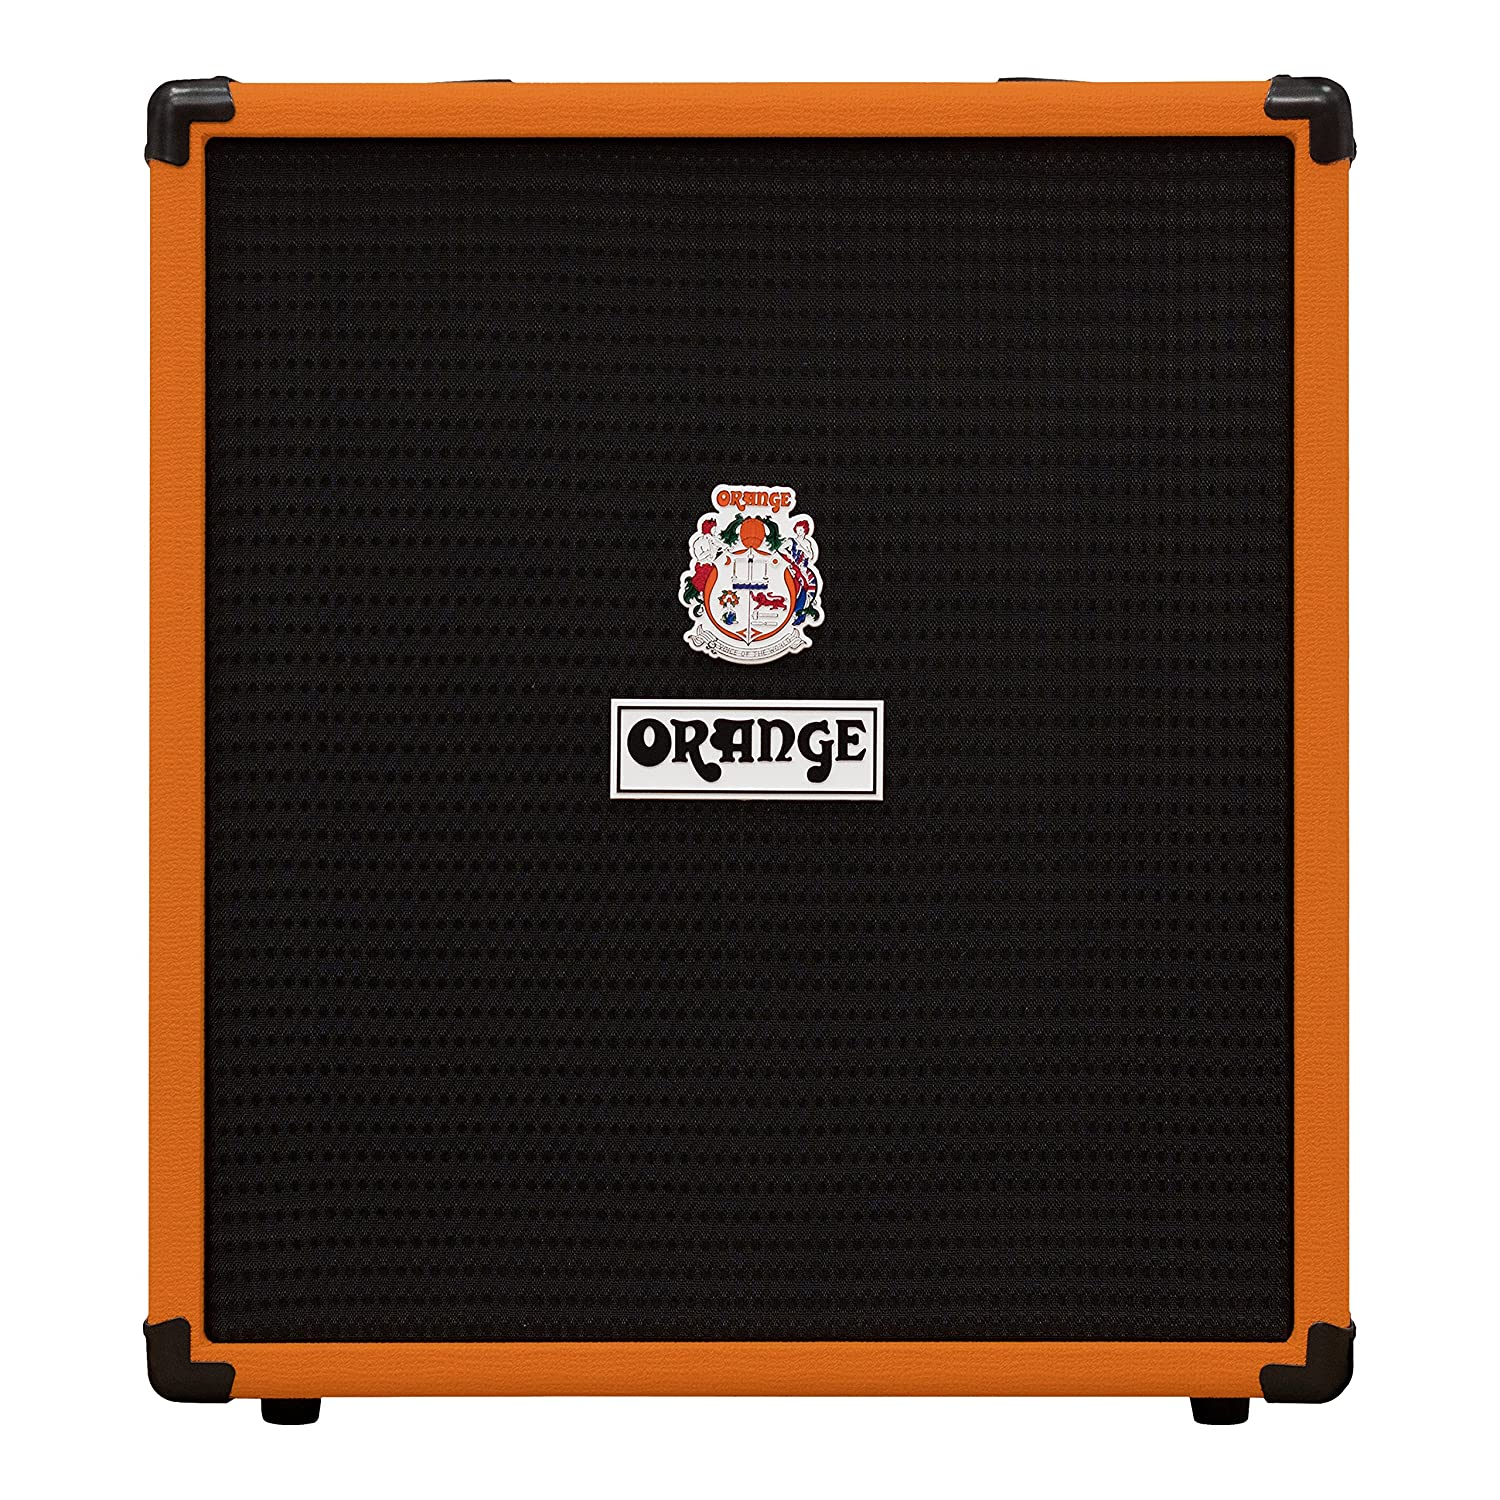 Top 10 Best Bass Combo Amp Under $200 to $300 9